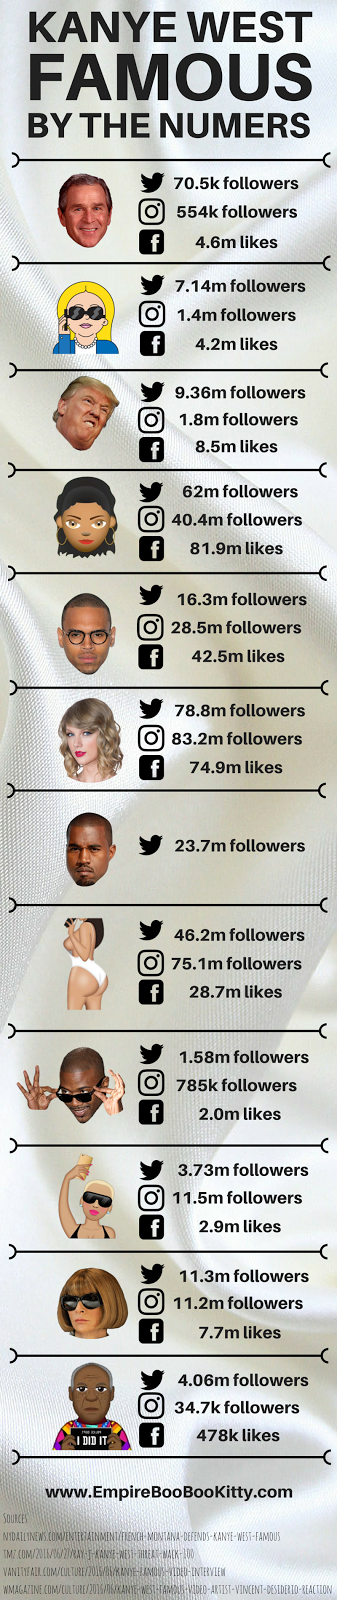 Kanye West Famous Infographic